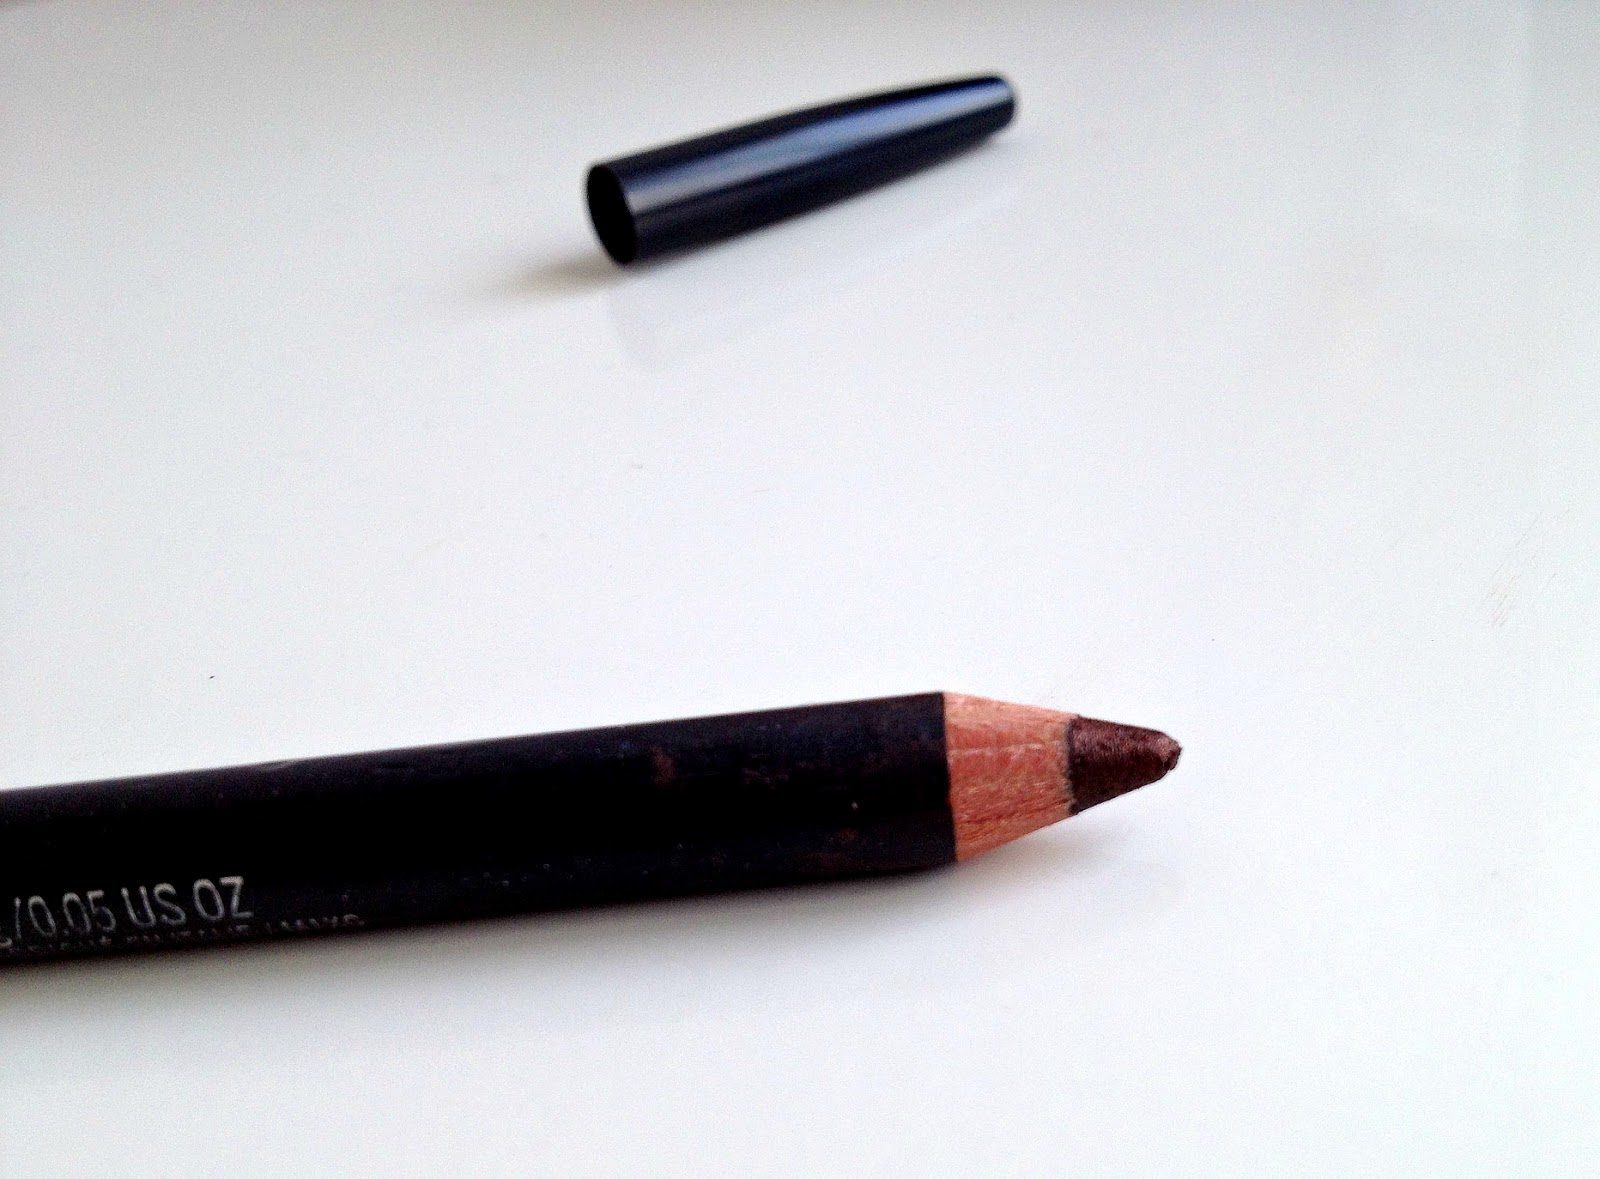 MAC Teddy Eye Liner Kohl Pencil